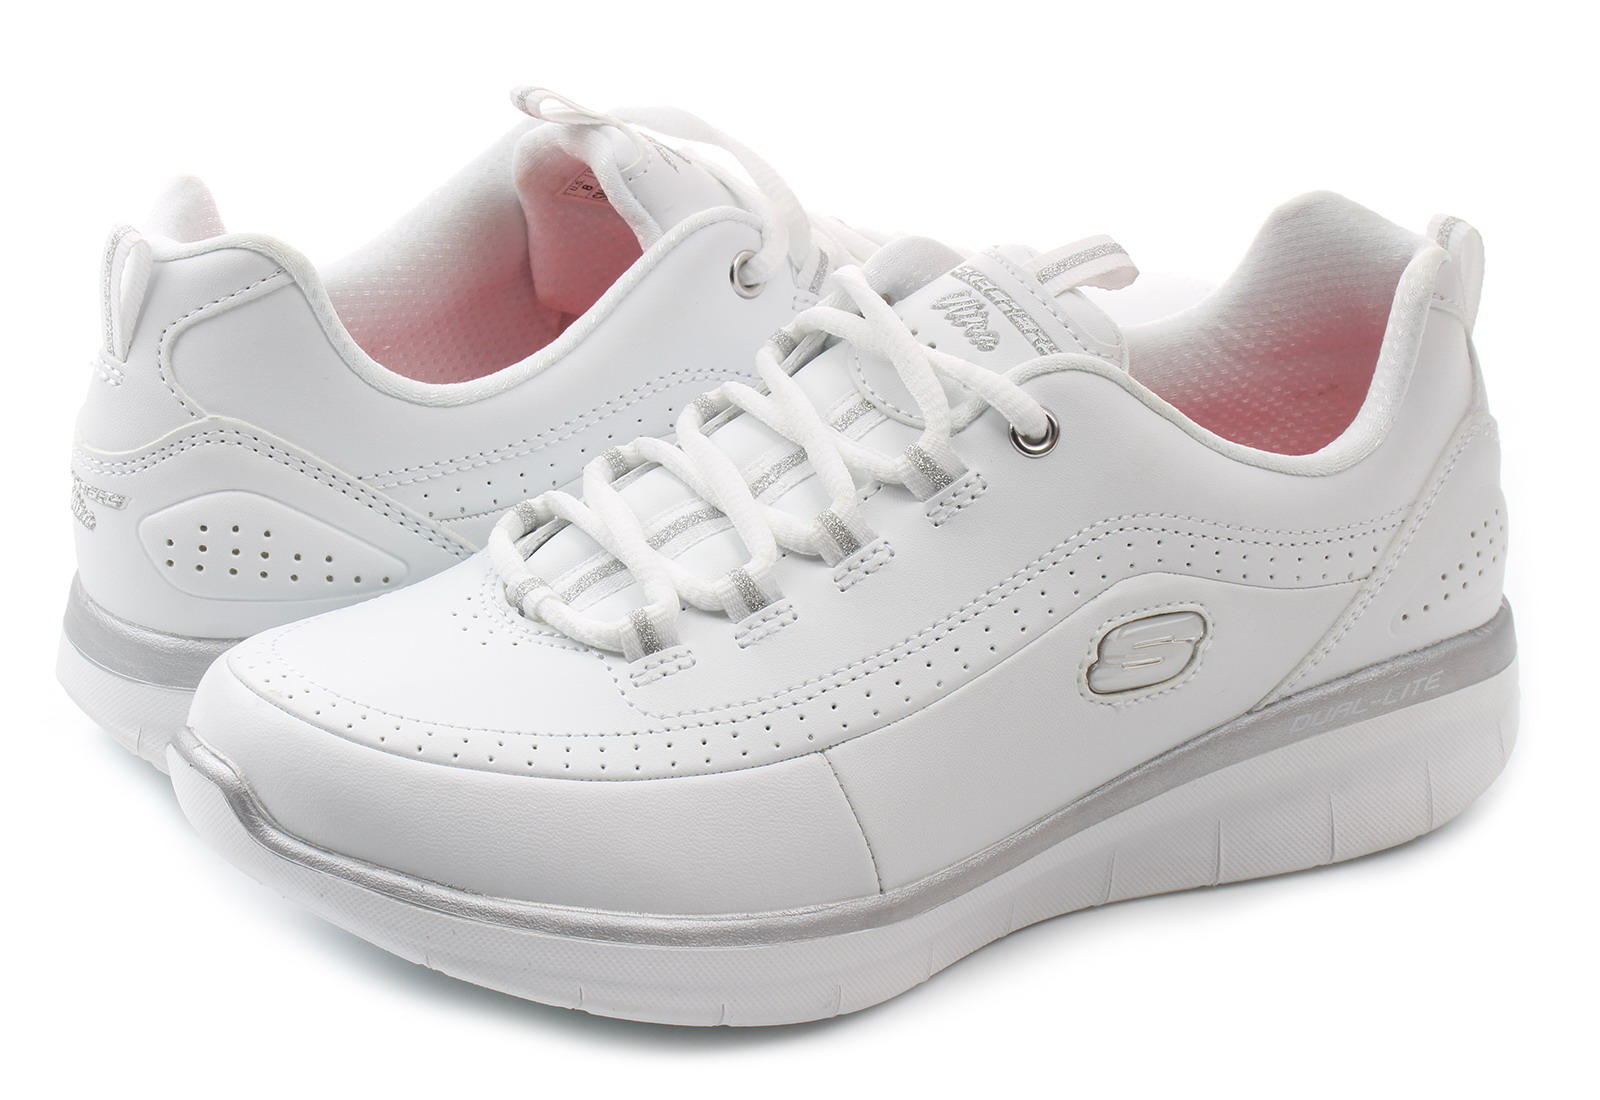 Skechers Cipő Skech Air Stratus 13276 bkhp Office